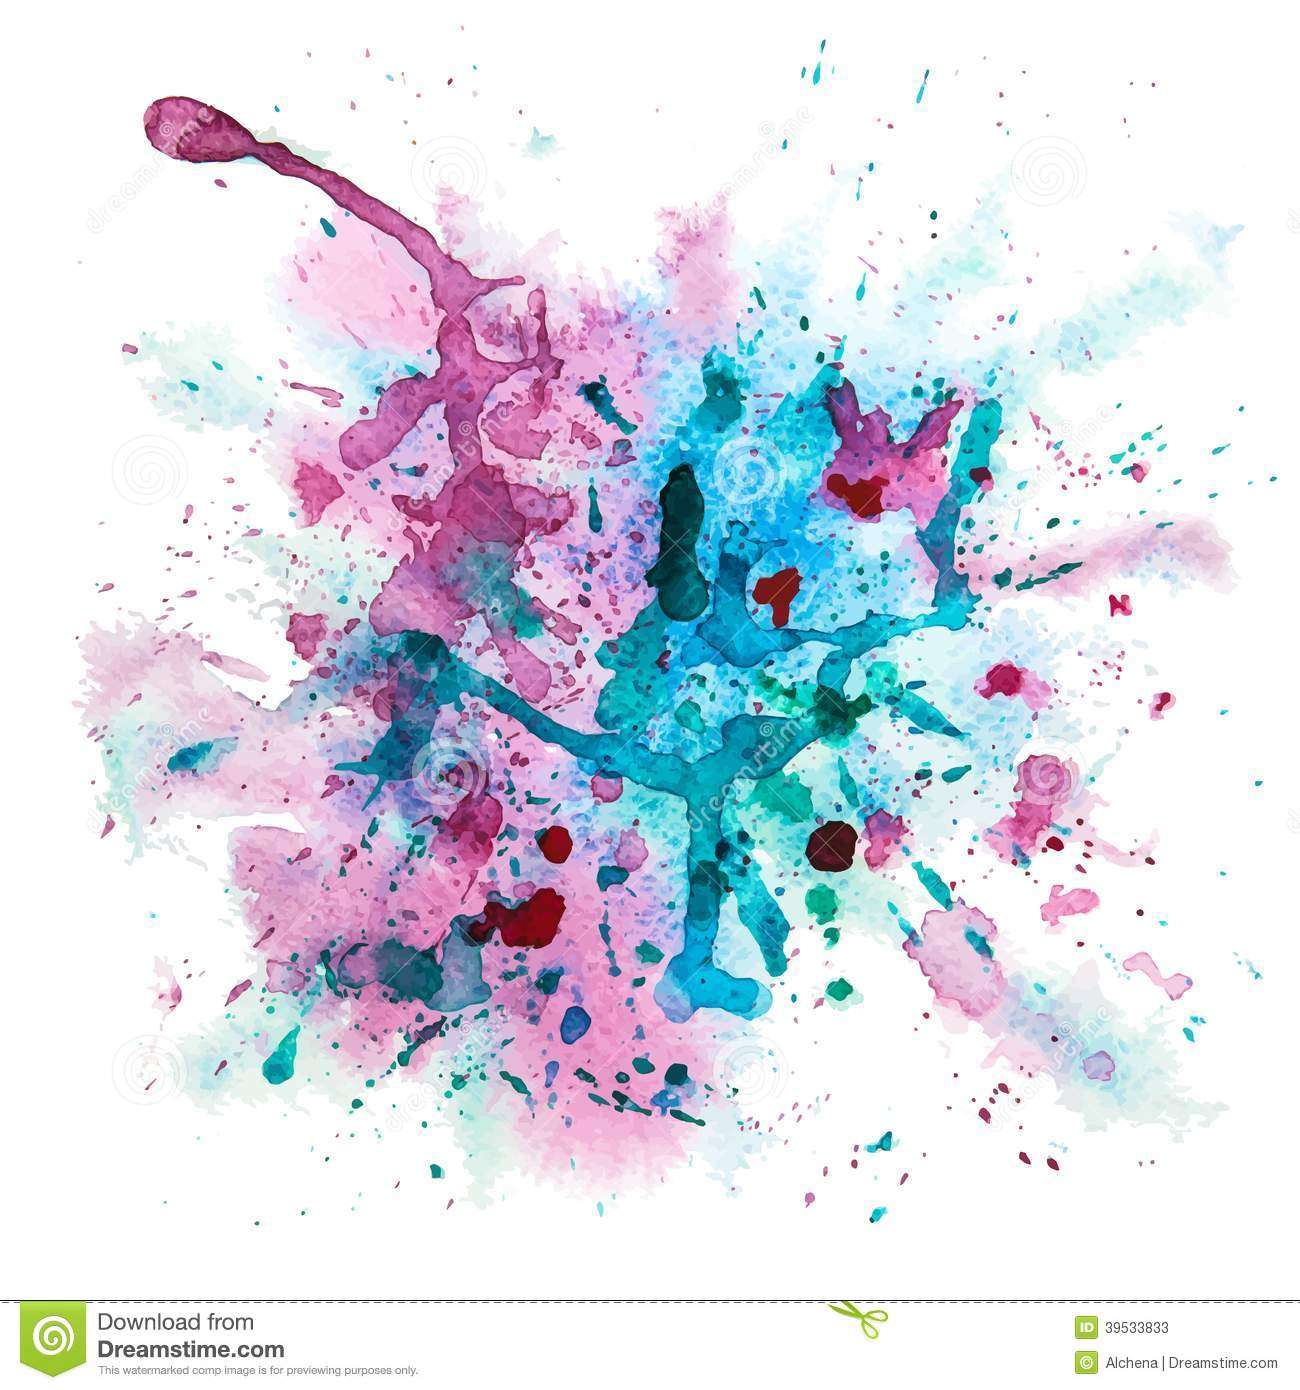 10 Multicolor Watercolor Splash Vector Images